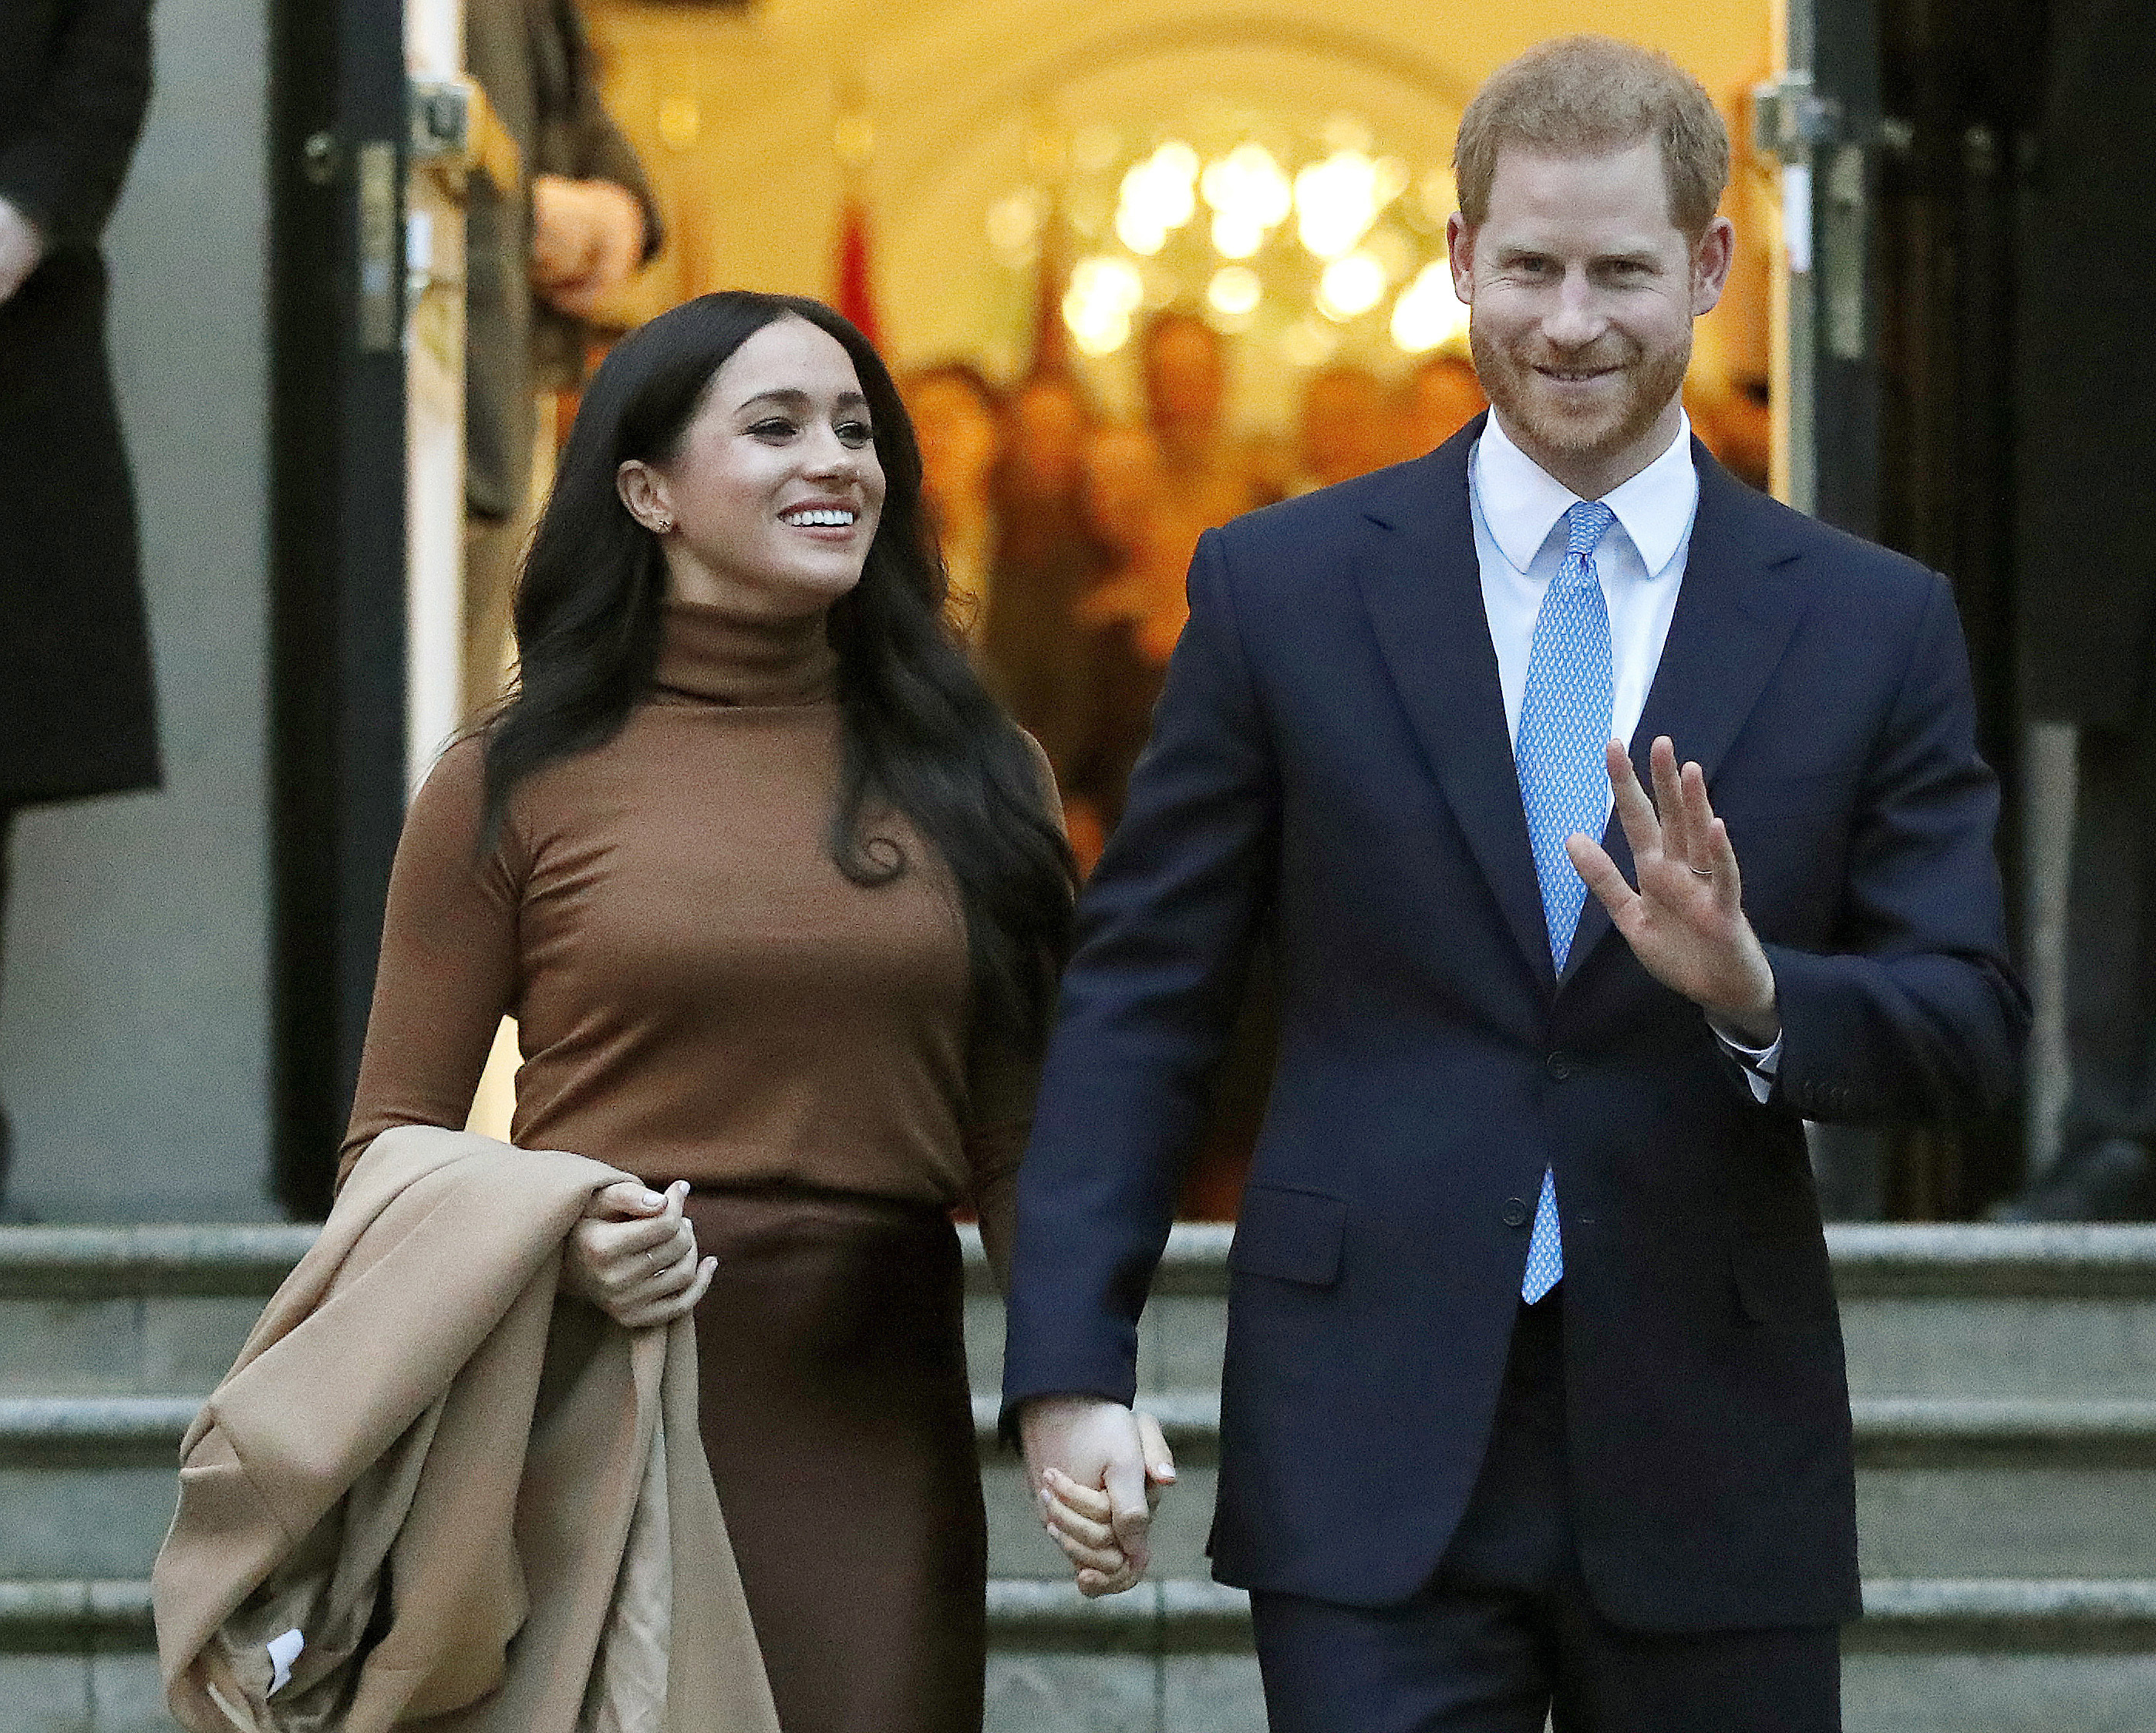 FILE - Prince Harry and Meghan, the Duke and Duchess of Sussex, leave after visiting Canada House on Jan. 7, 2020, in London. The royal couple and guests from Elton John to their son Archie appear on their new podcast's first audio release on Tuesday, Dec. 29, 2020, for Spotify, a 34-minute special with reflections on 2020.  Photo: AP